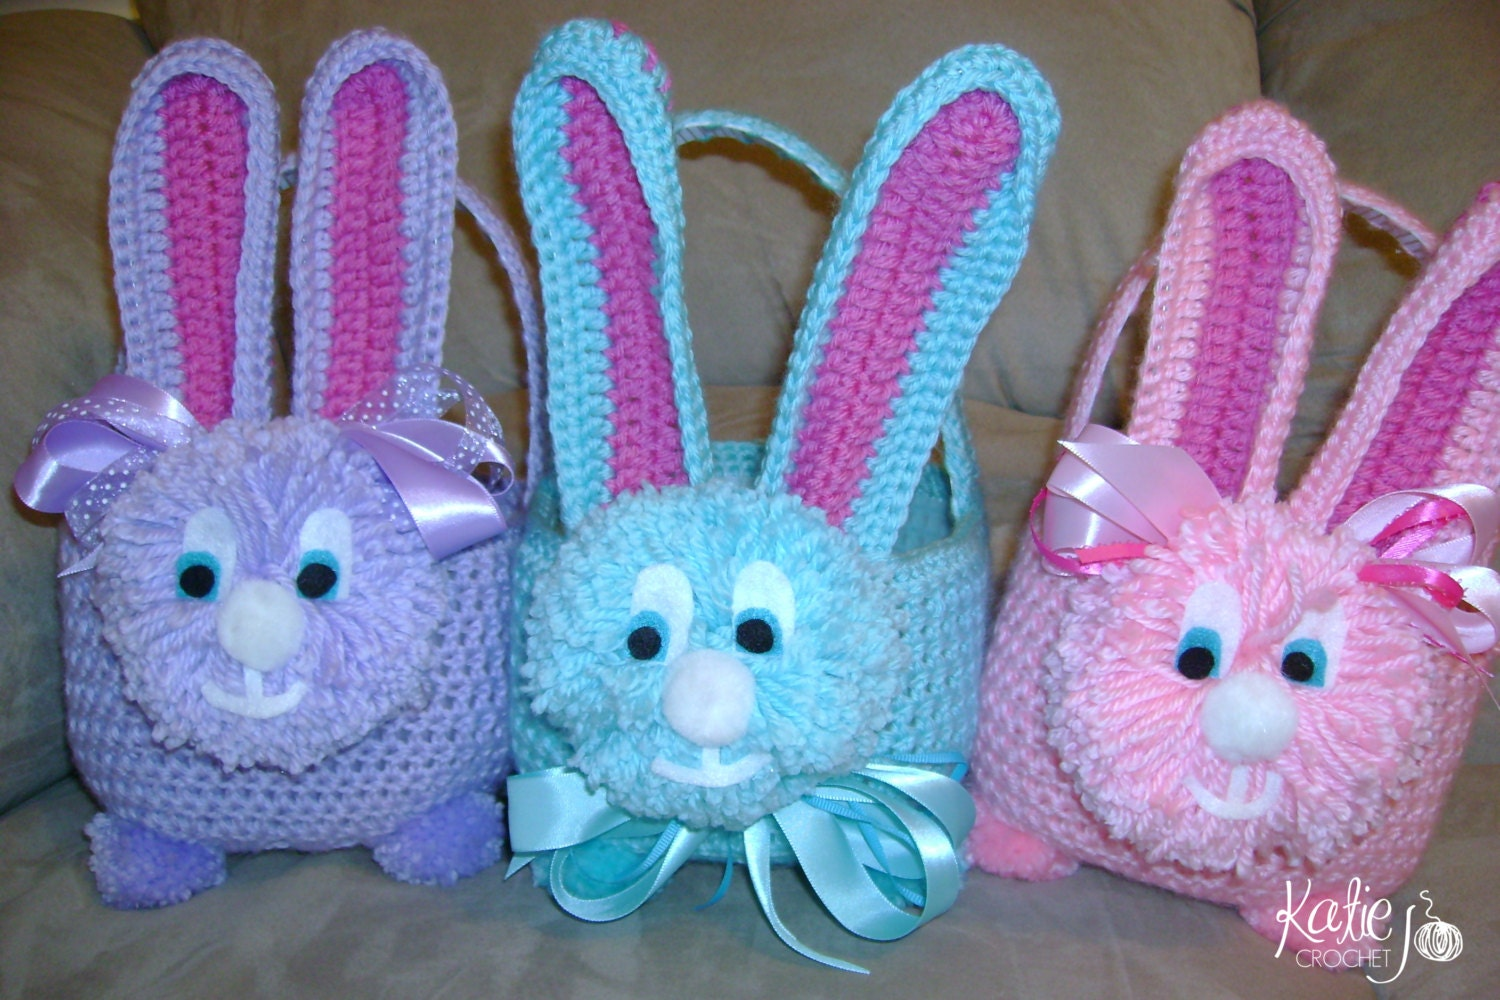 Free Crochet Patterns For Easter Bunny Baskets : Easter Bunny Basket Crochet Pattern